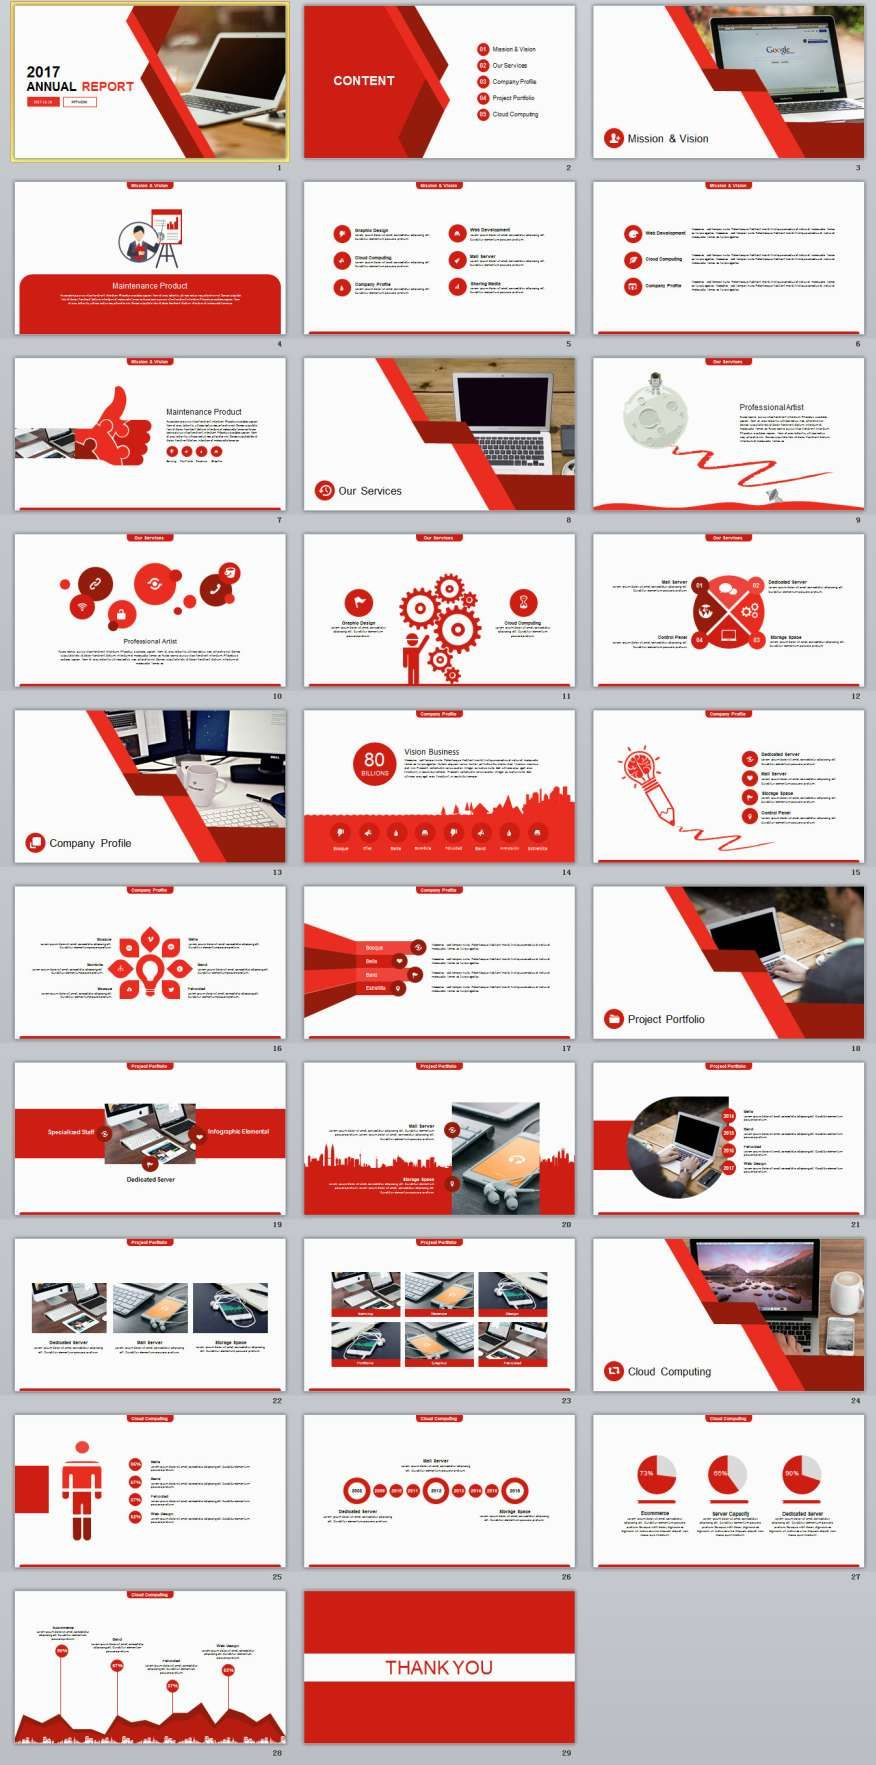 29 red annual report powerpoint templates apresentao e identidade 29 red annual report powerpoint templates toneelgroepblik Image collections